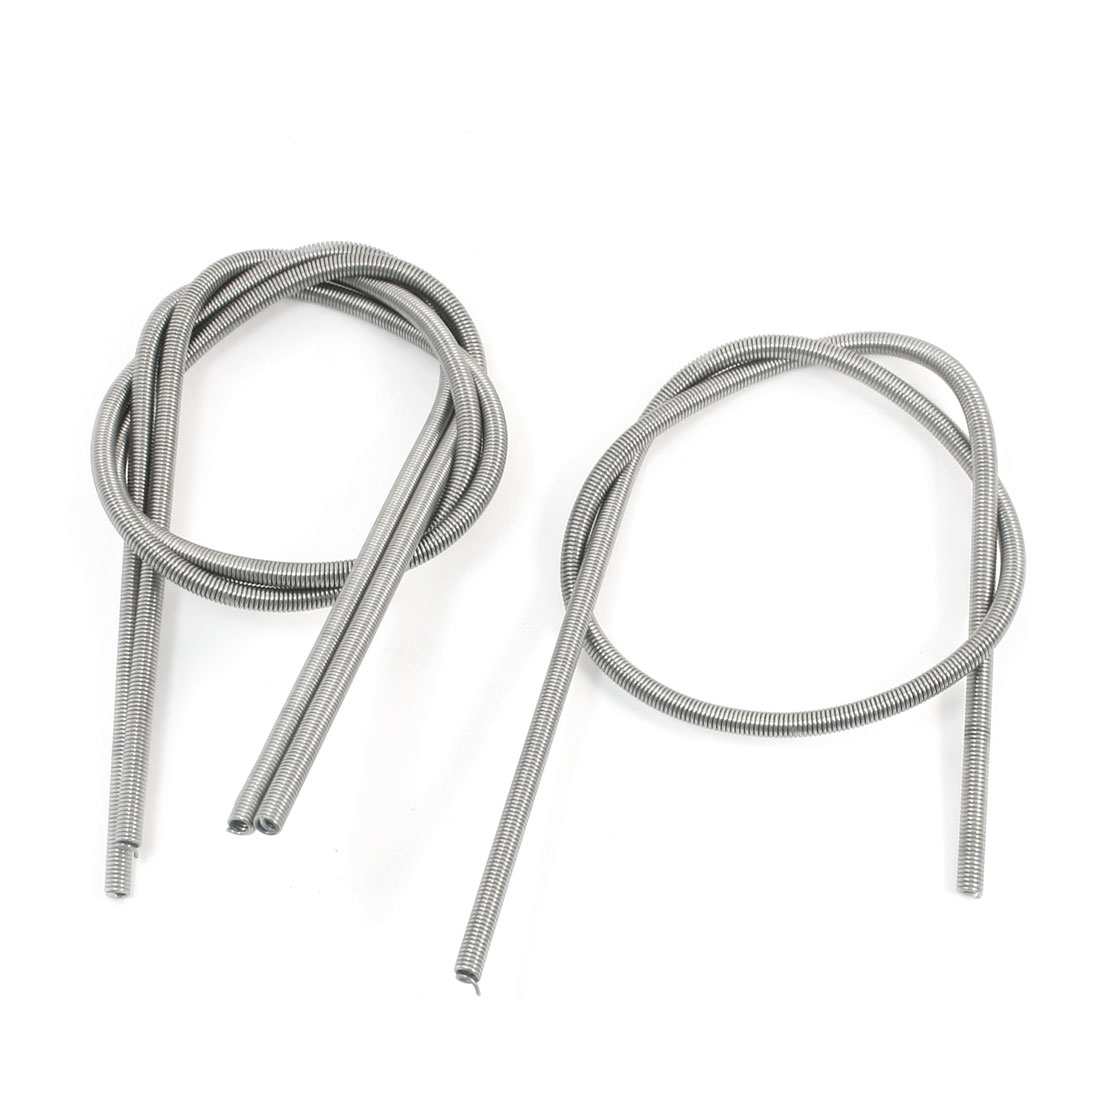 3PCS Kiln Furnace Heating Heater Element Wire Coil Lead 3KW AC220V